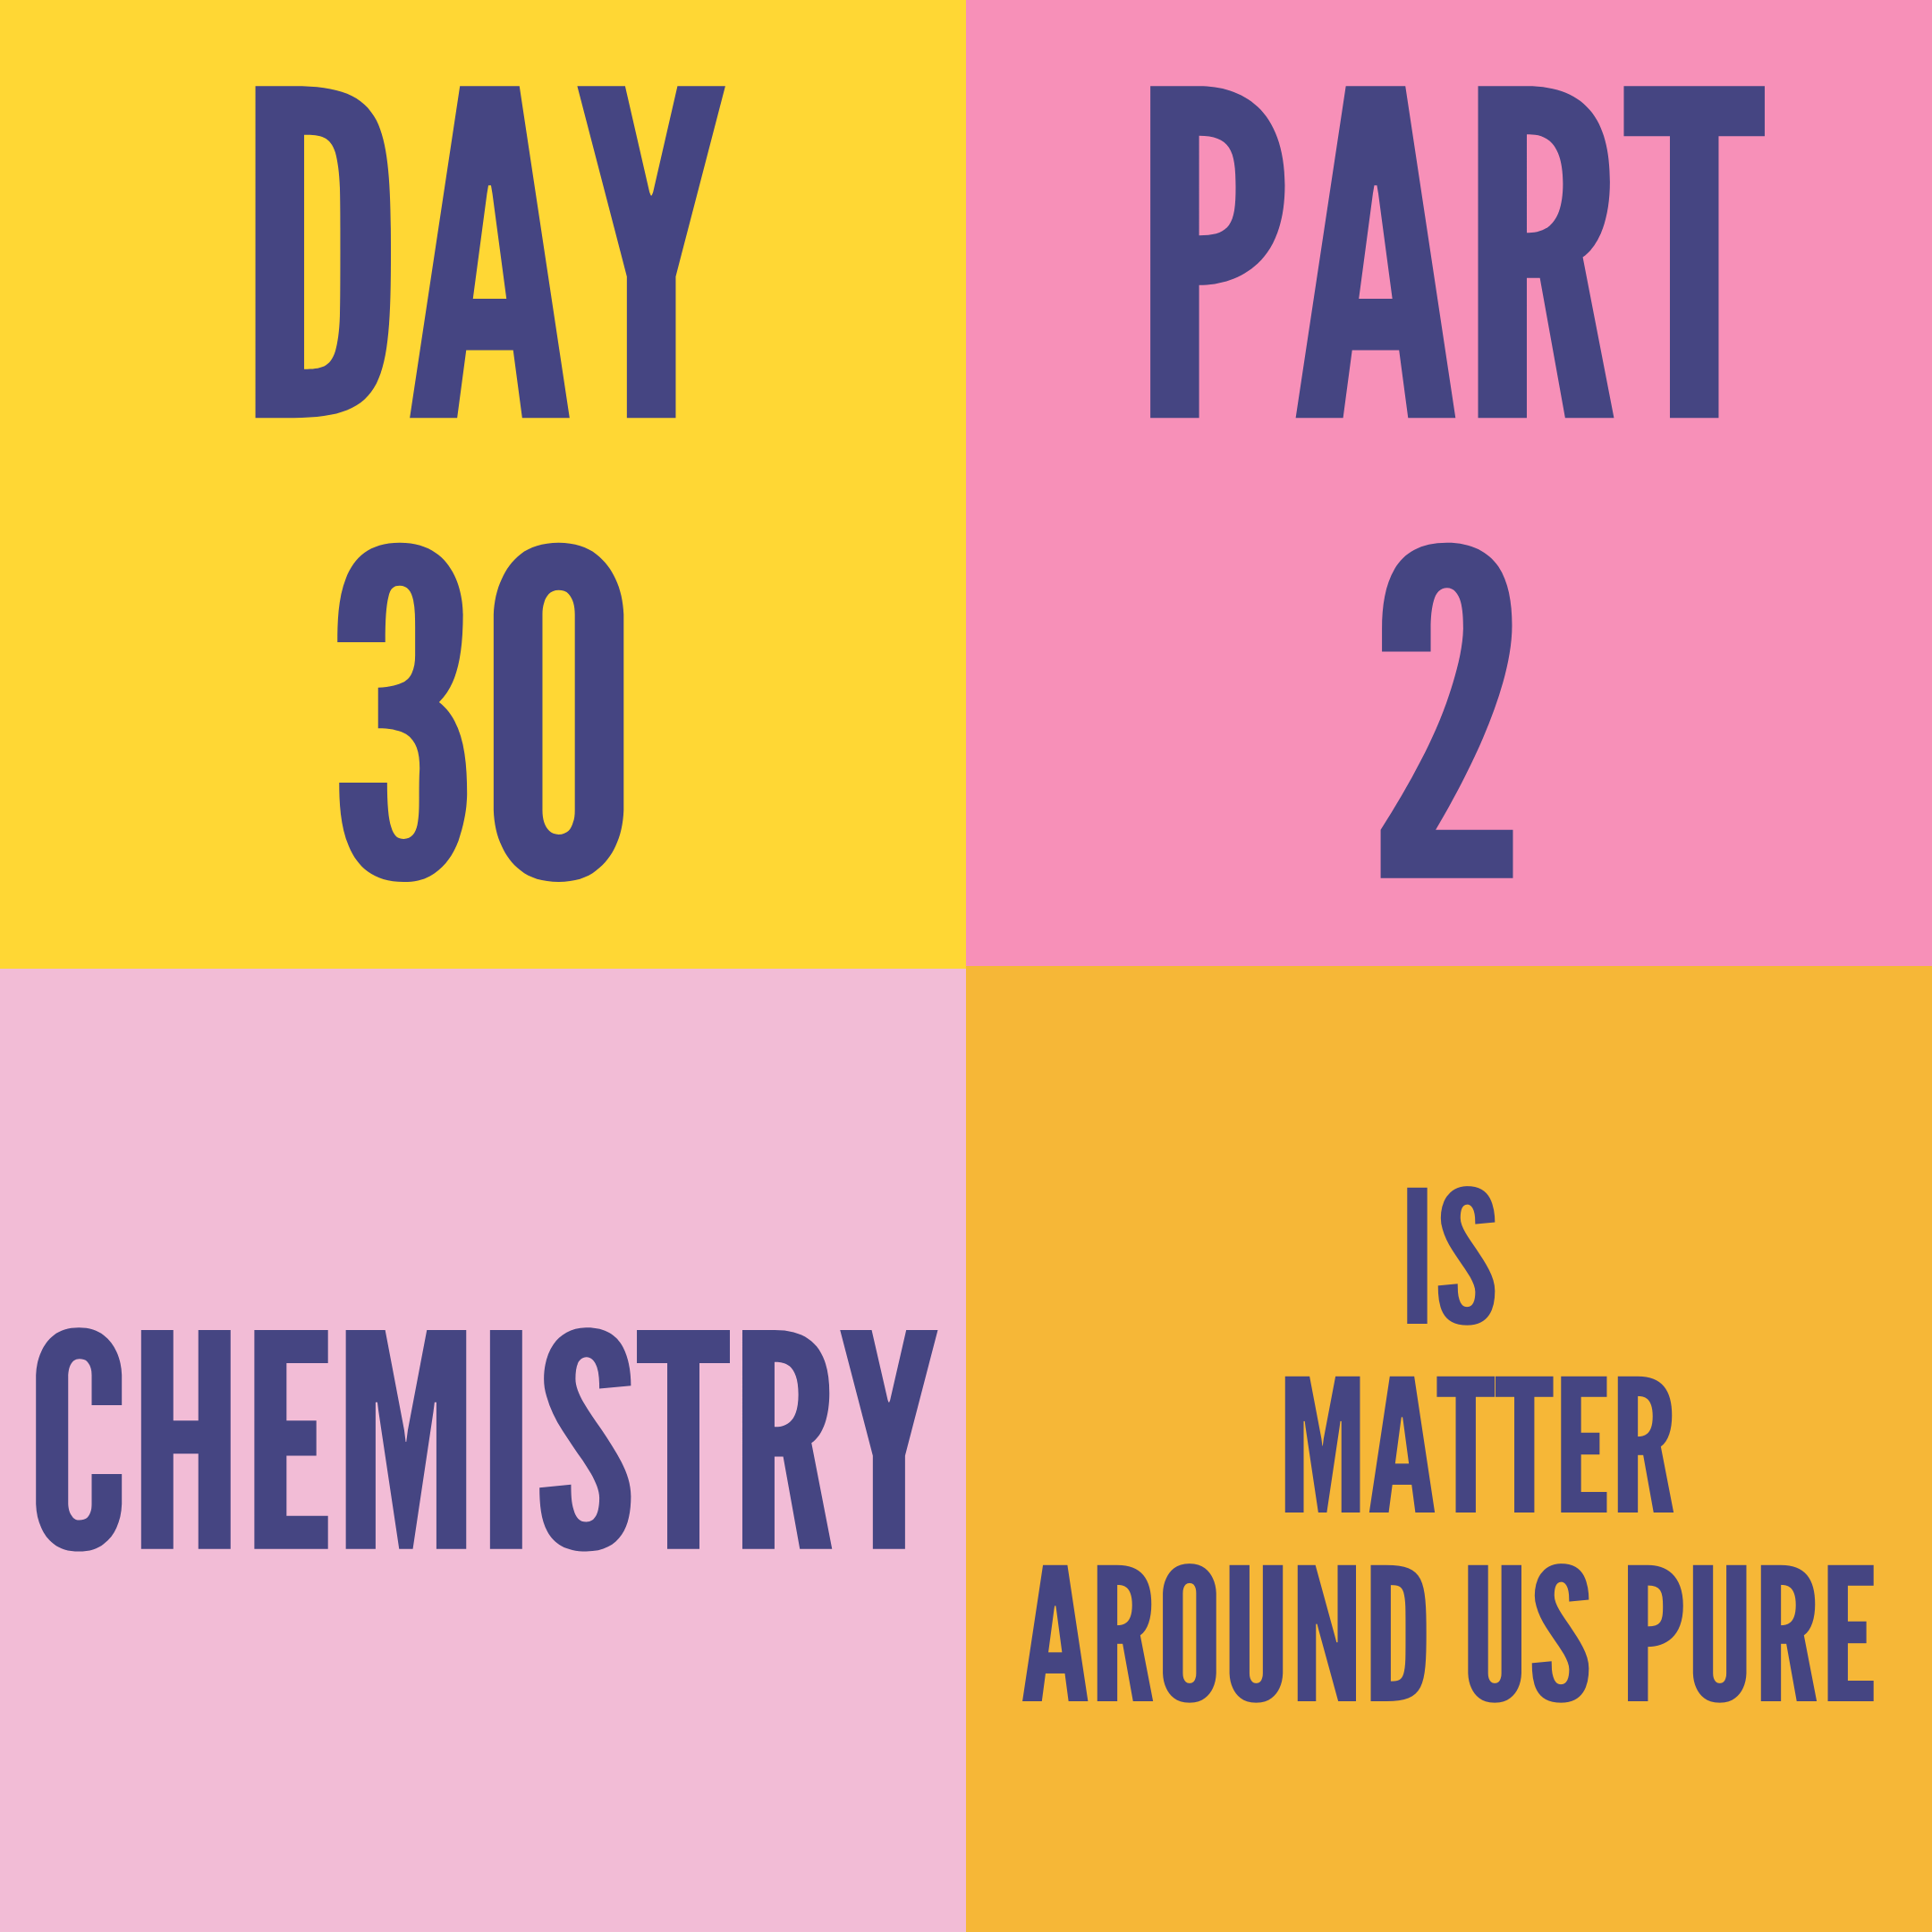 DAY-30 PART-2 IS MATTER AROUND US PURE